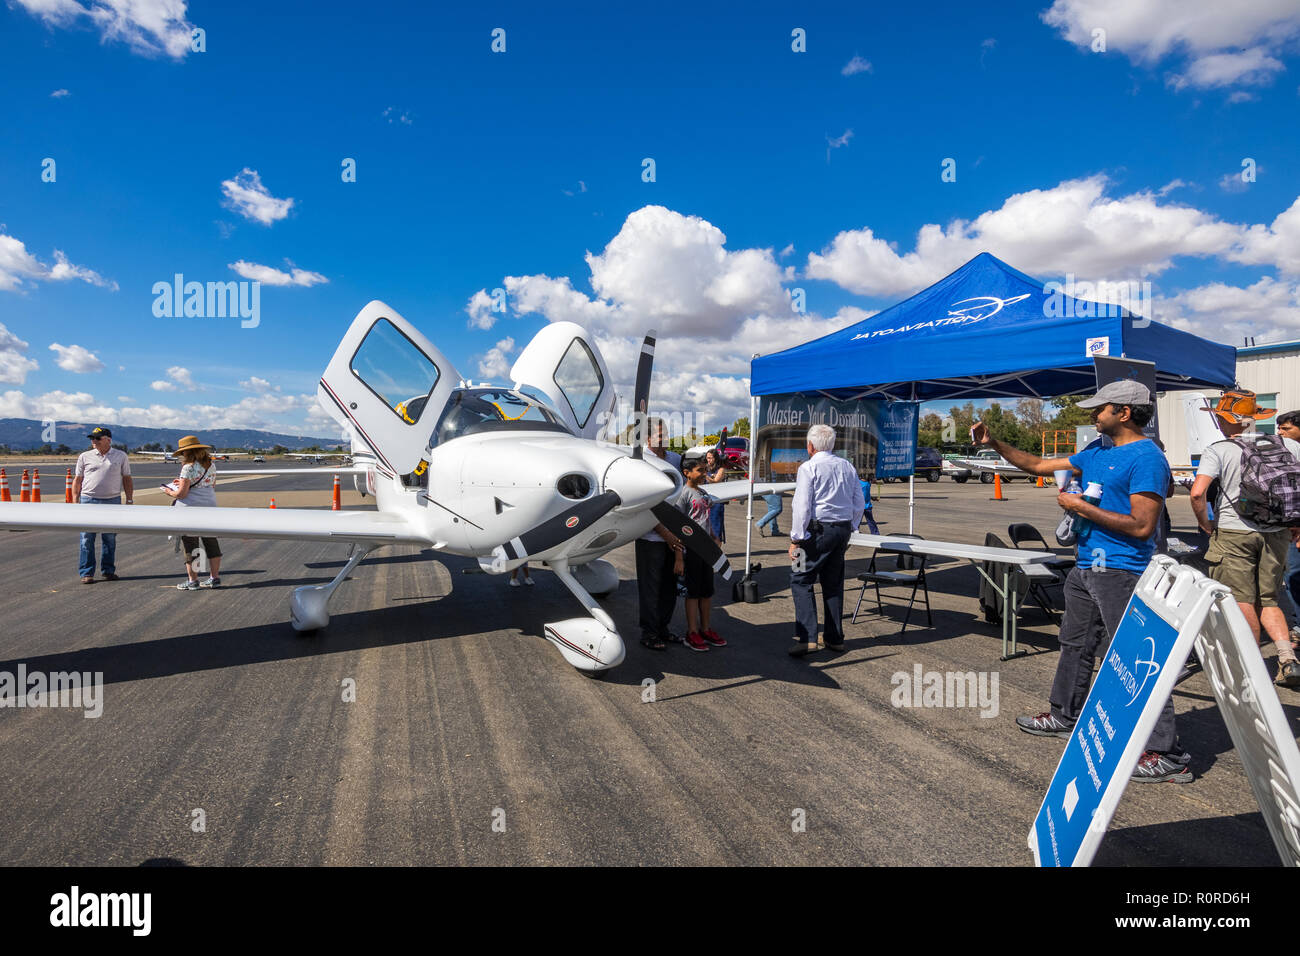 October 6, 2018 Livermore / CA / USA - Private aircraft on display at the Livermore Municipal Airport Open House event, East San Francisco bay area - Stock Image